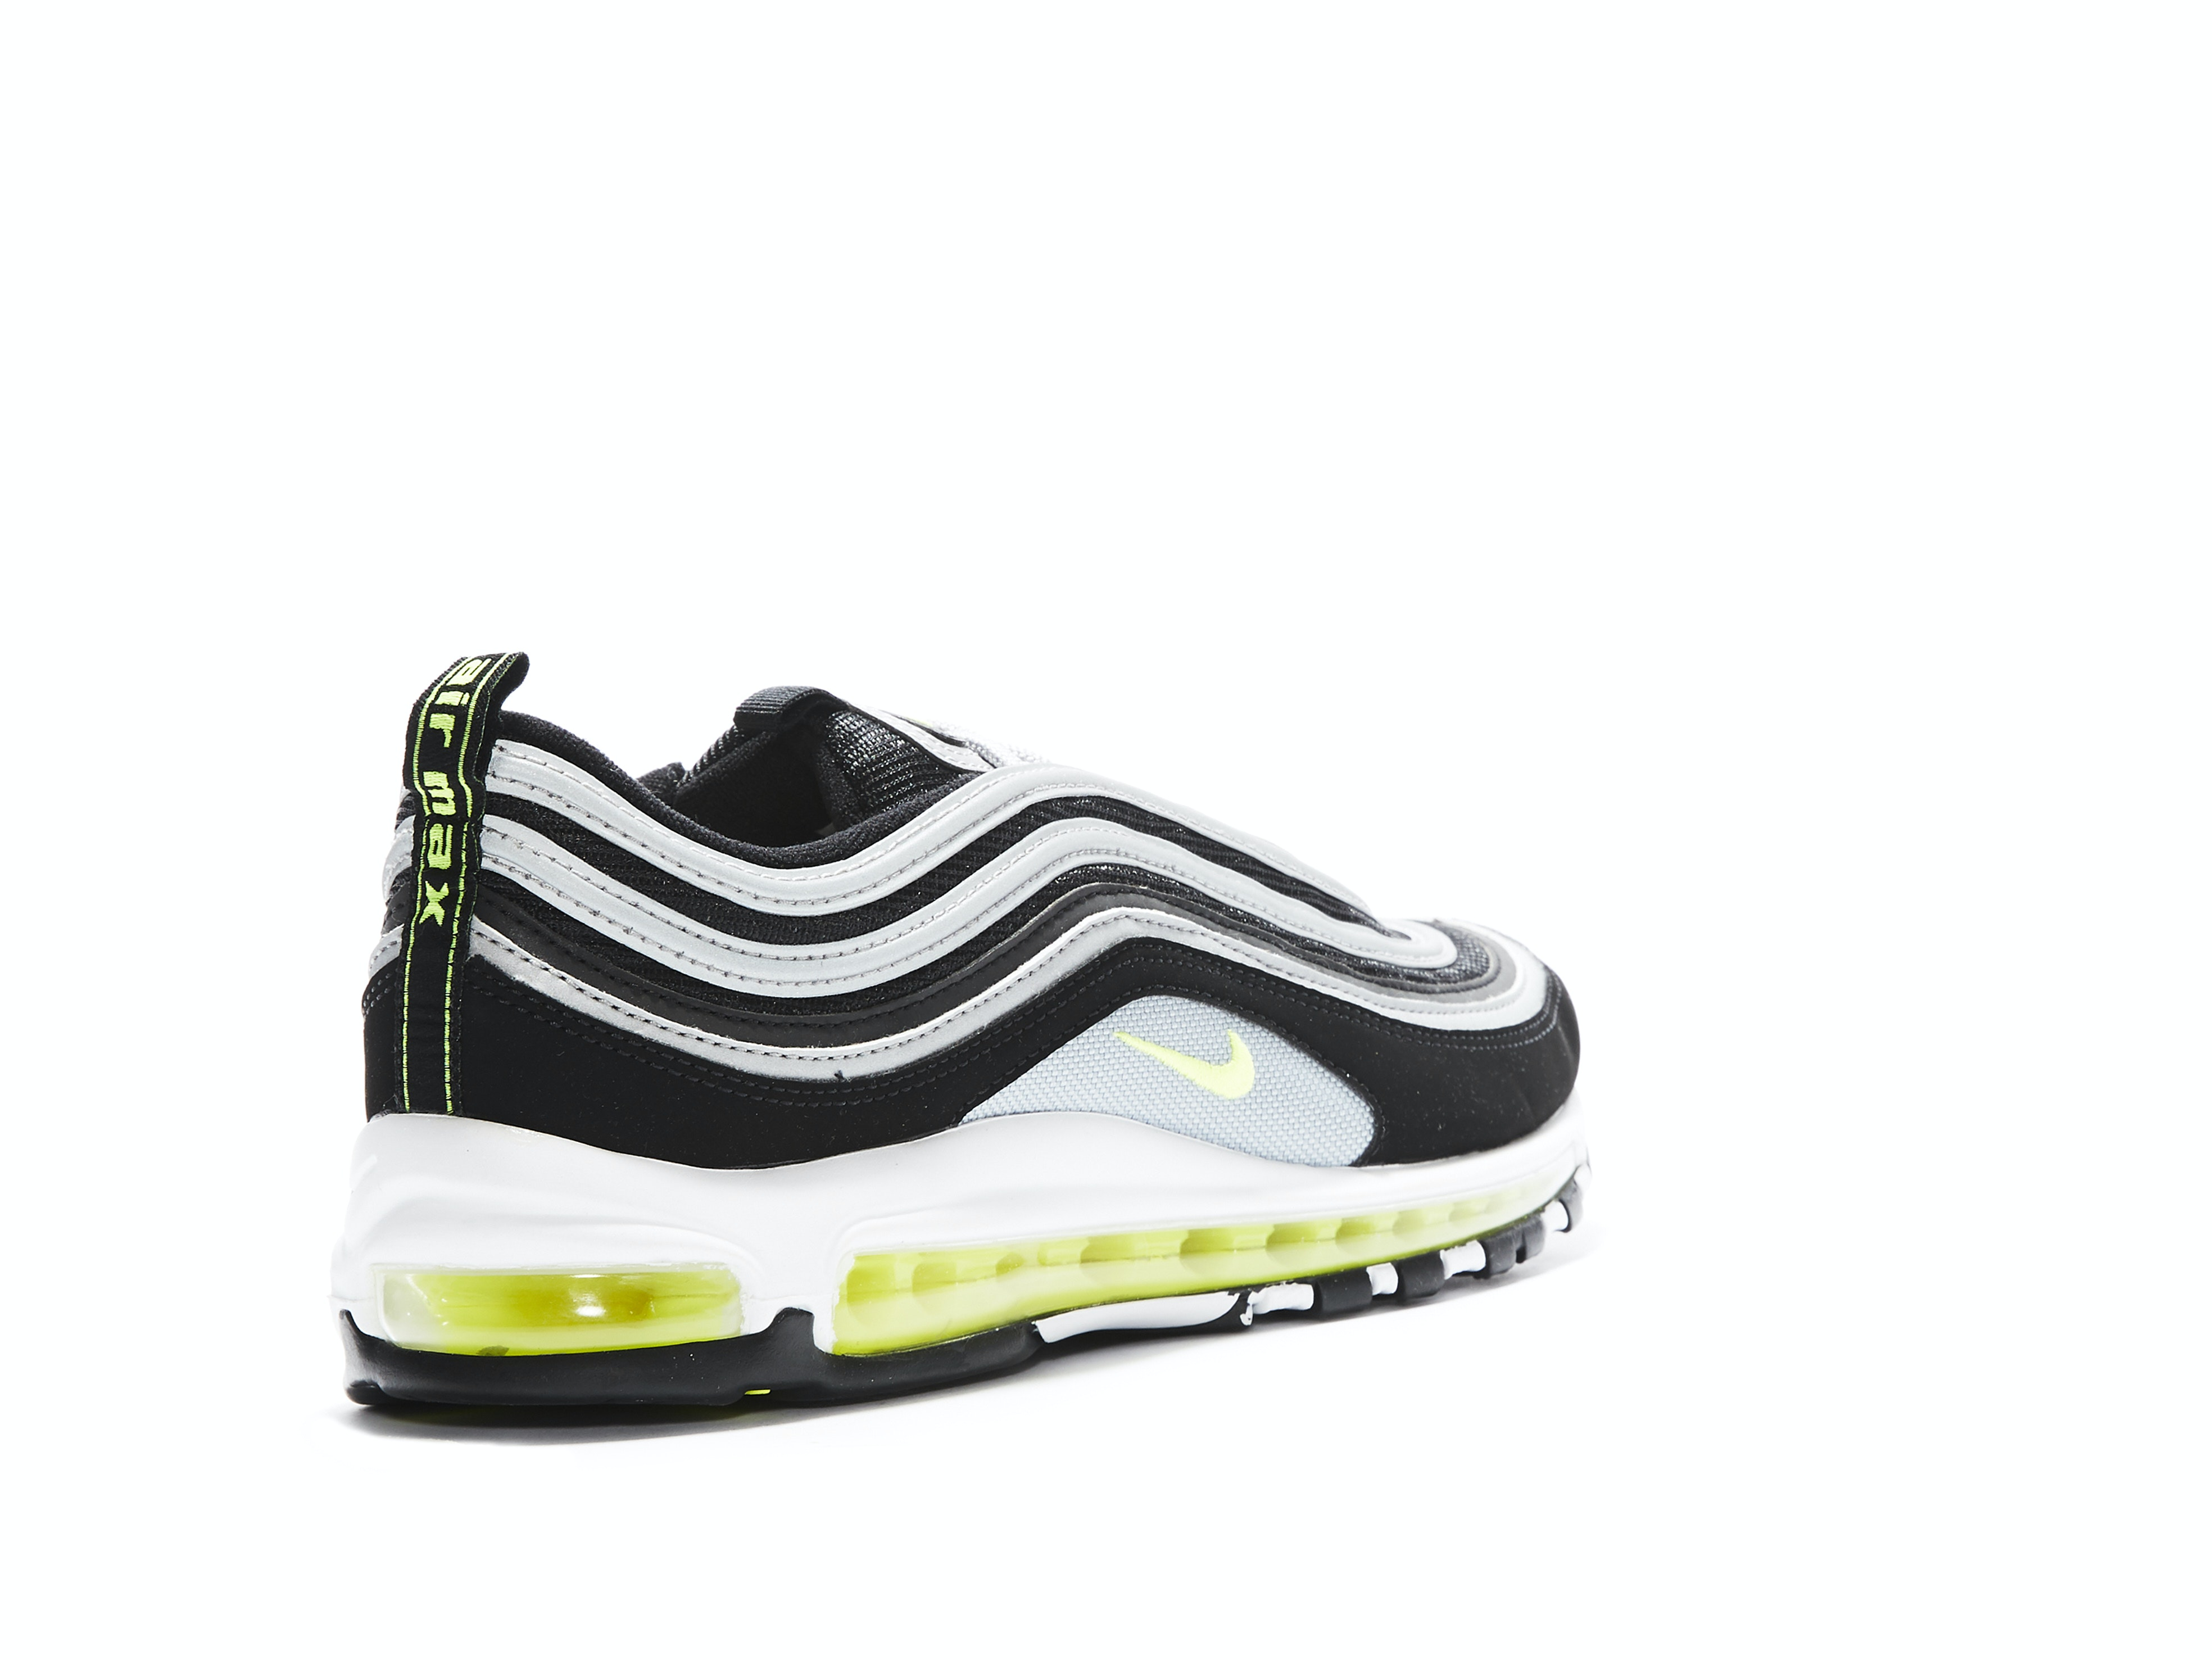 b22f5a3bb7ca Air Max 97 OG QS Neon. 100% AuthenticSold out! Nike   921826-004